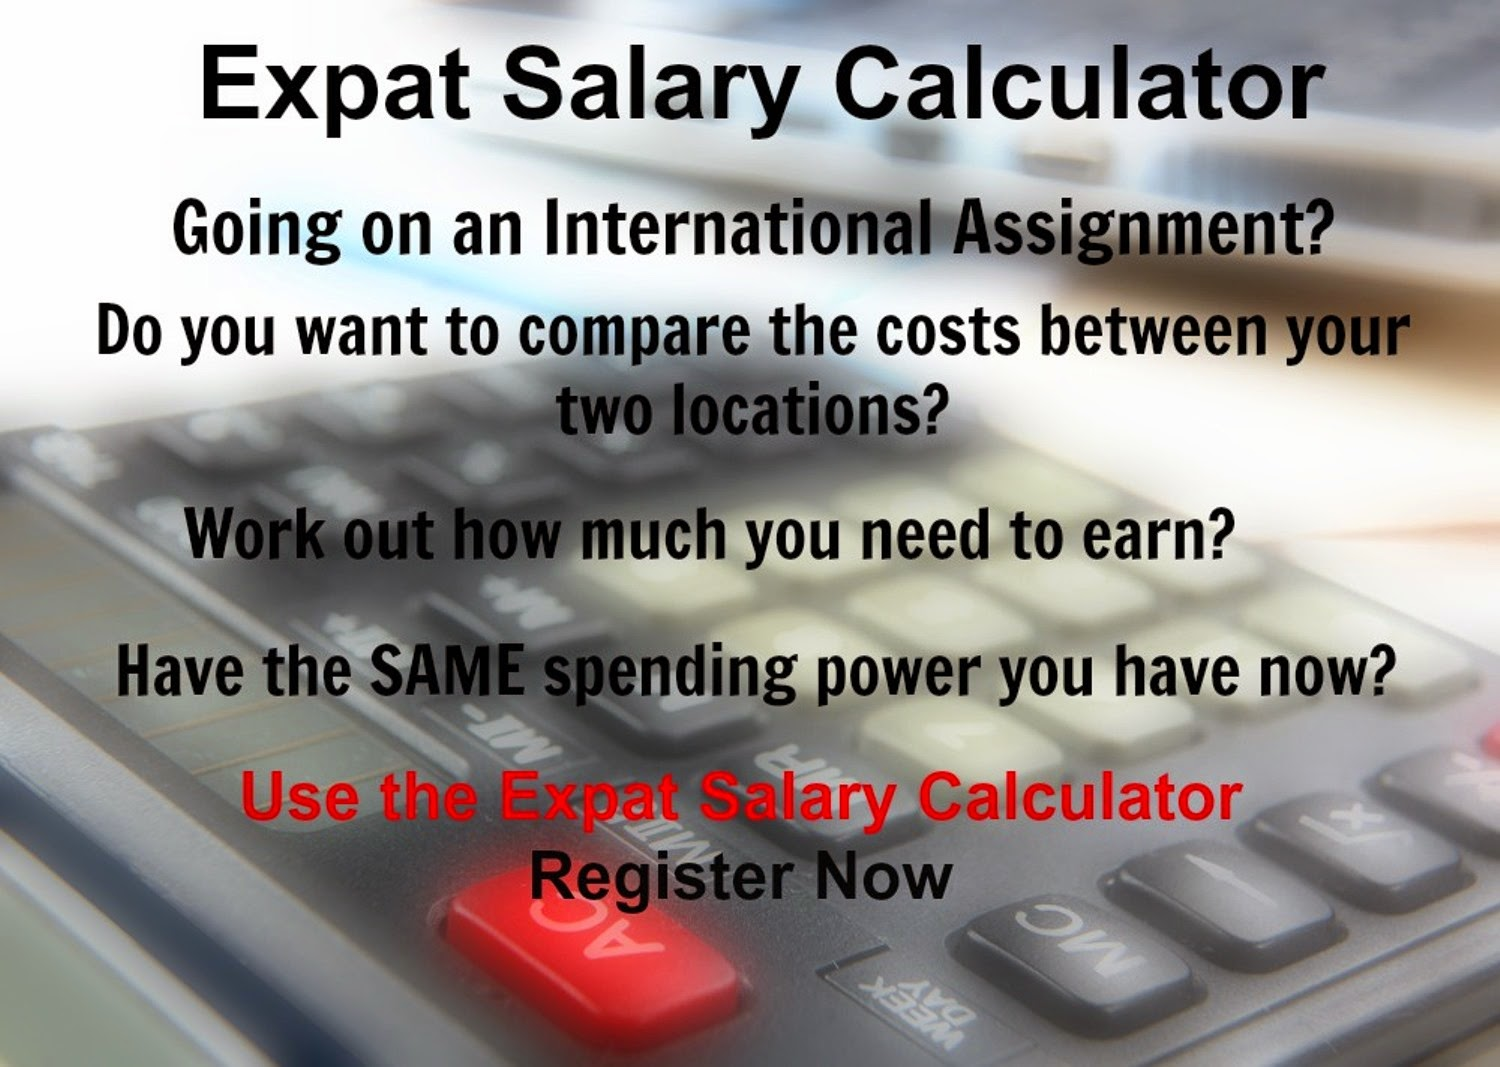 Expat Salary Calculator